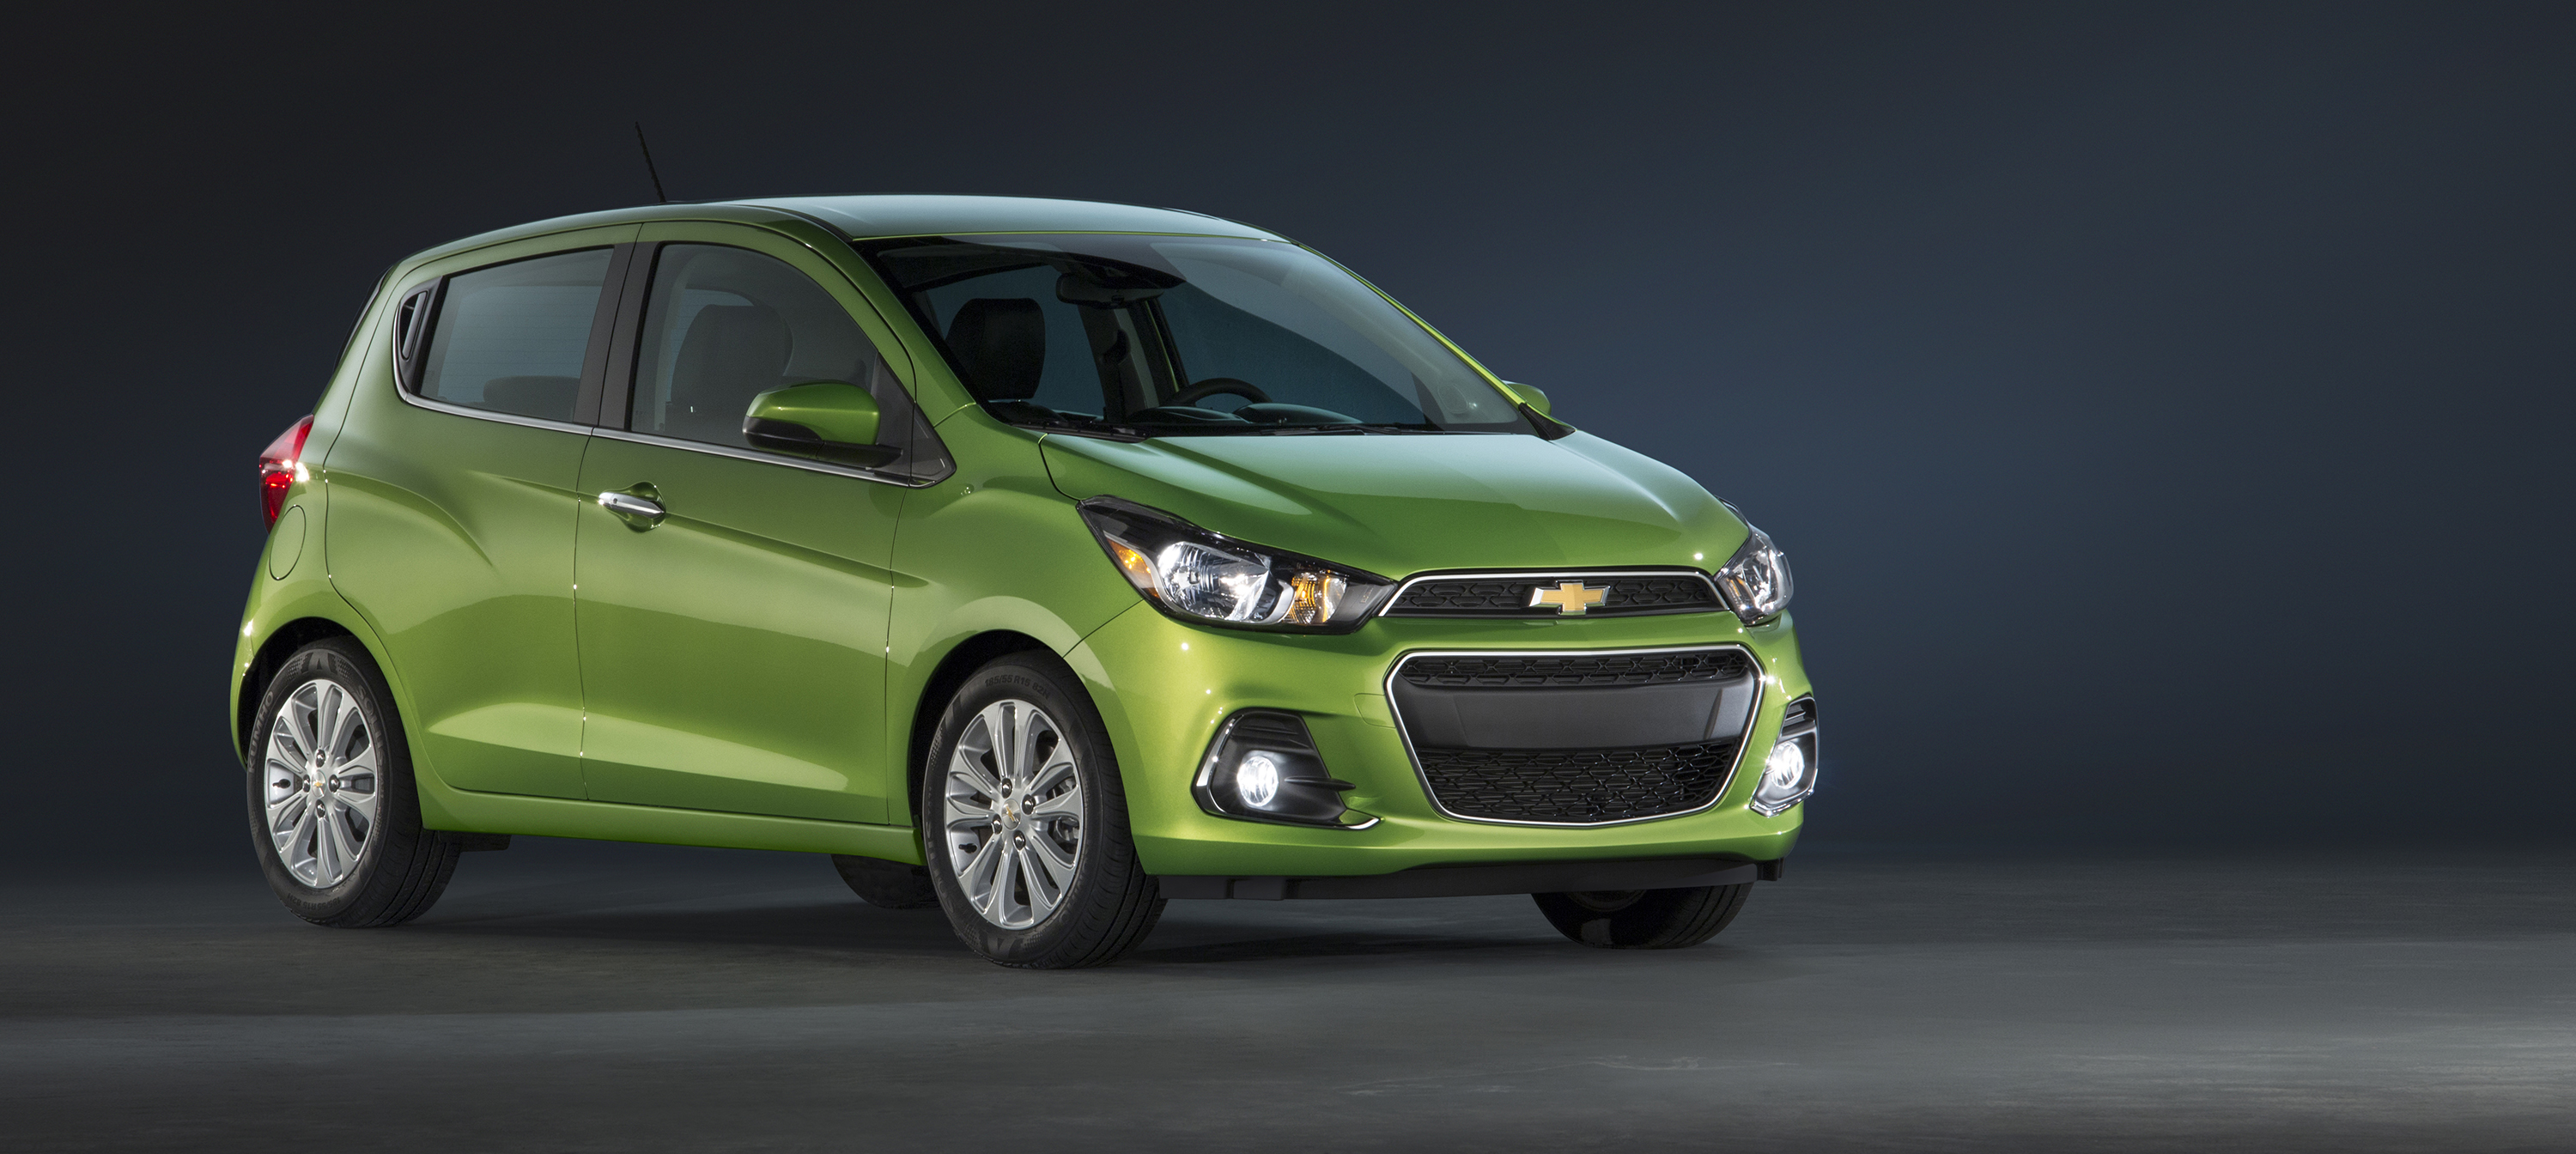 chevrolet photo vehiclesearchresults sale in current vehicles vehicle for sk cruze swift used